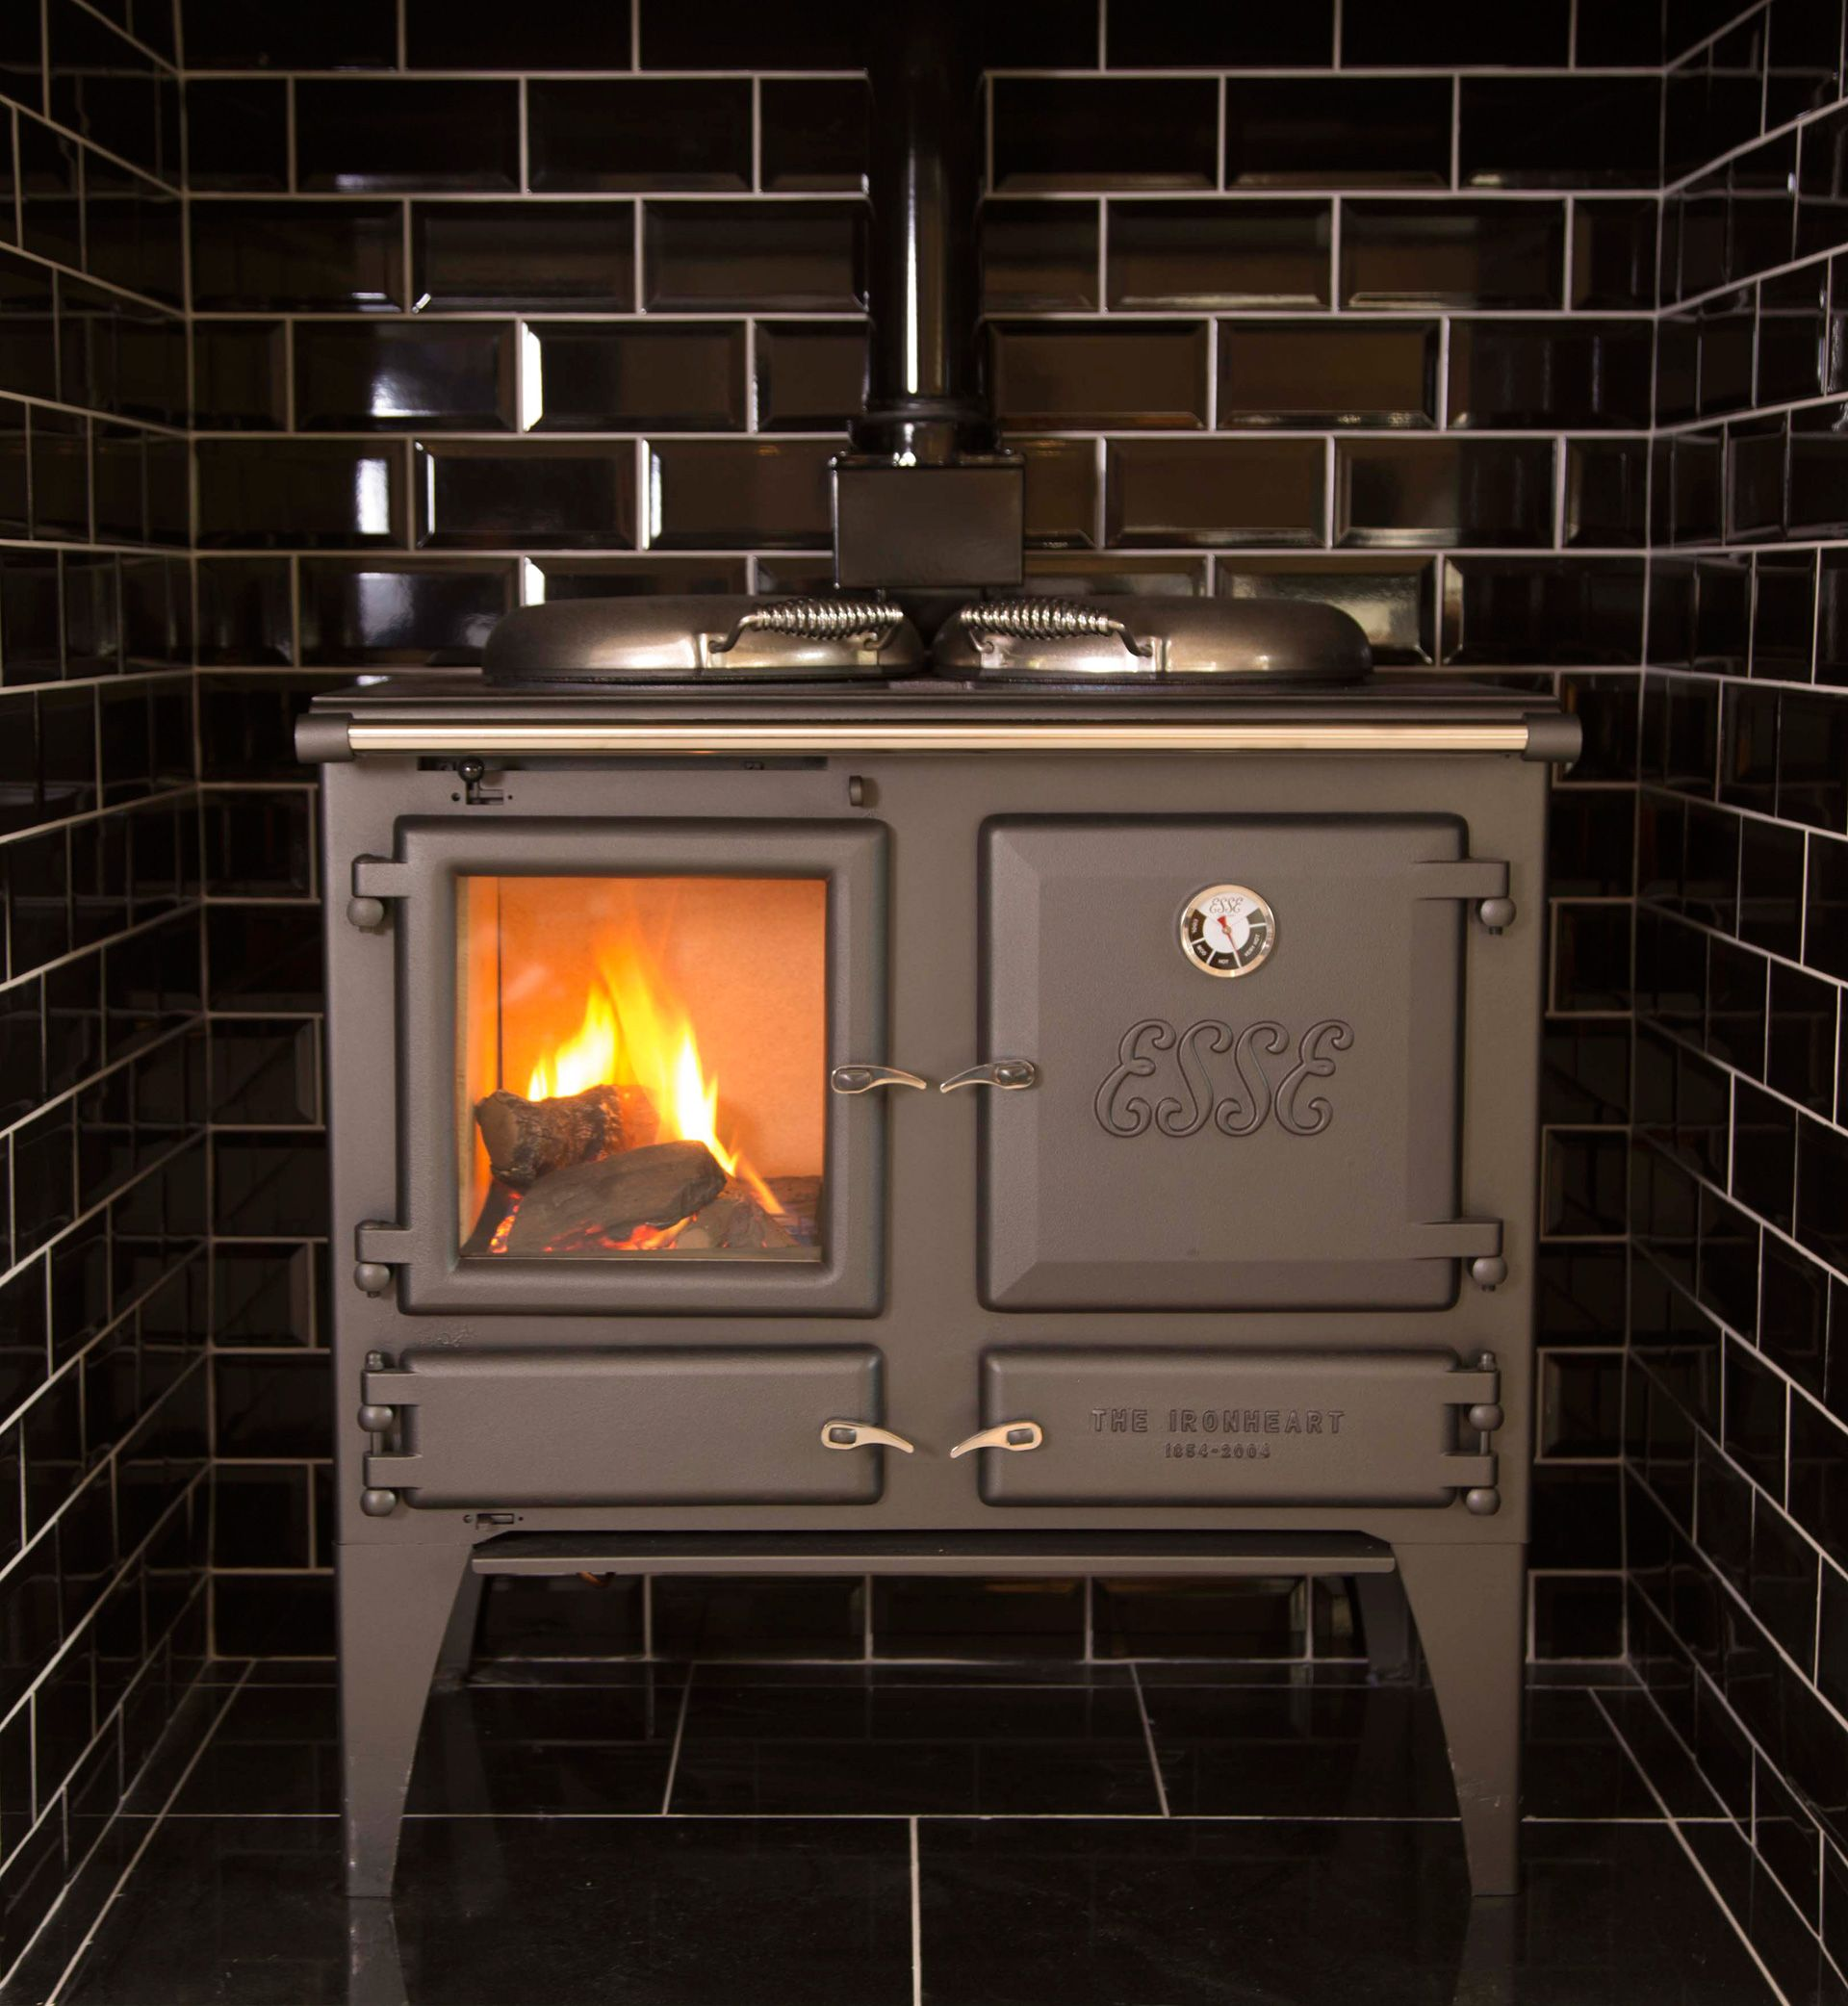 gas ironheart cookery demonstration range cooker ranges and stove